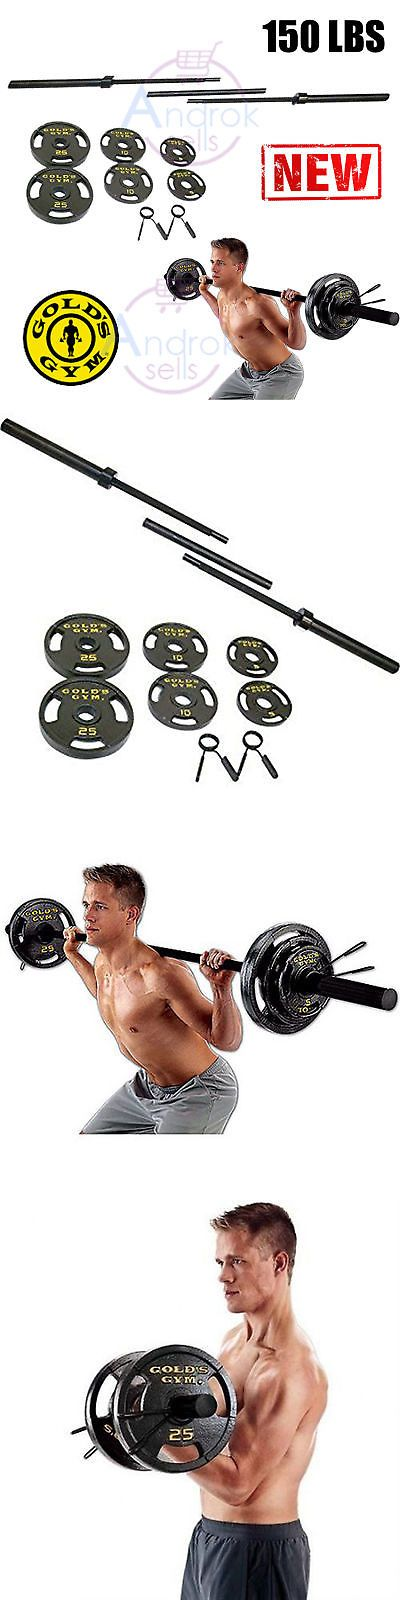 Barbells and Attachments 137864: Golds Gym Olympic Weight Set 110 Lb Plates Bar Workout Lifting Fitness Home New -> BUY IT NOW ONLY: $125.99 on eBay!